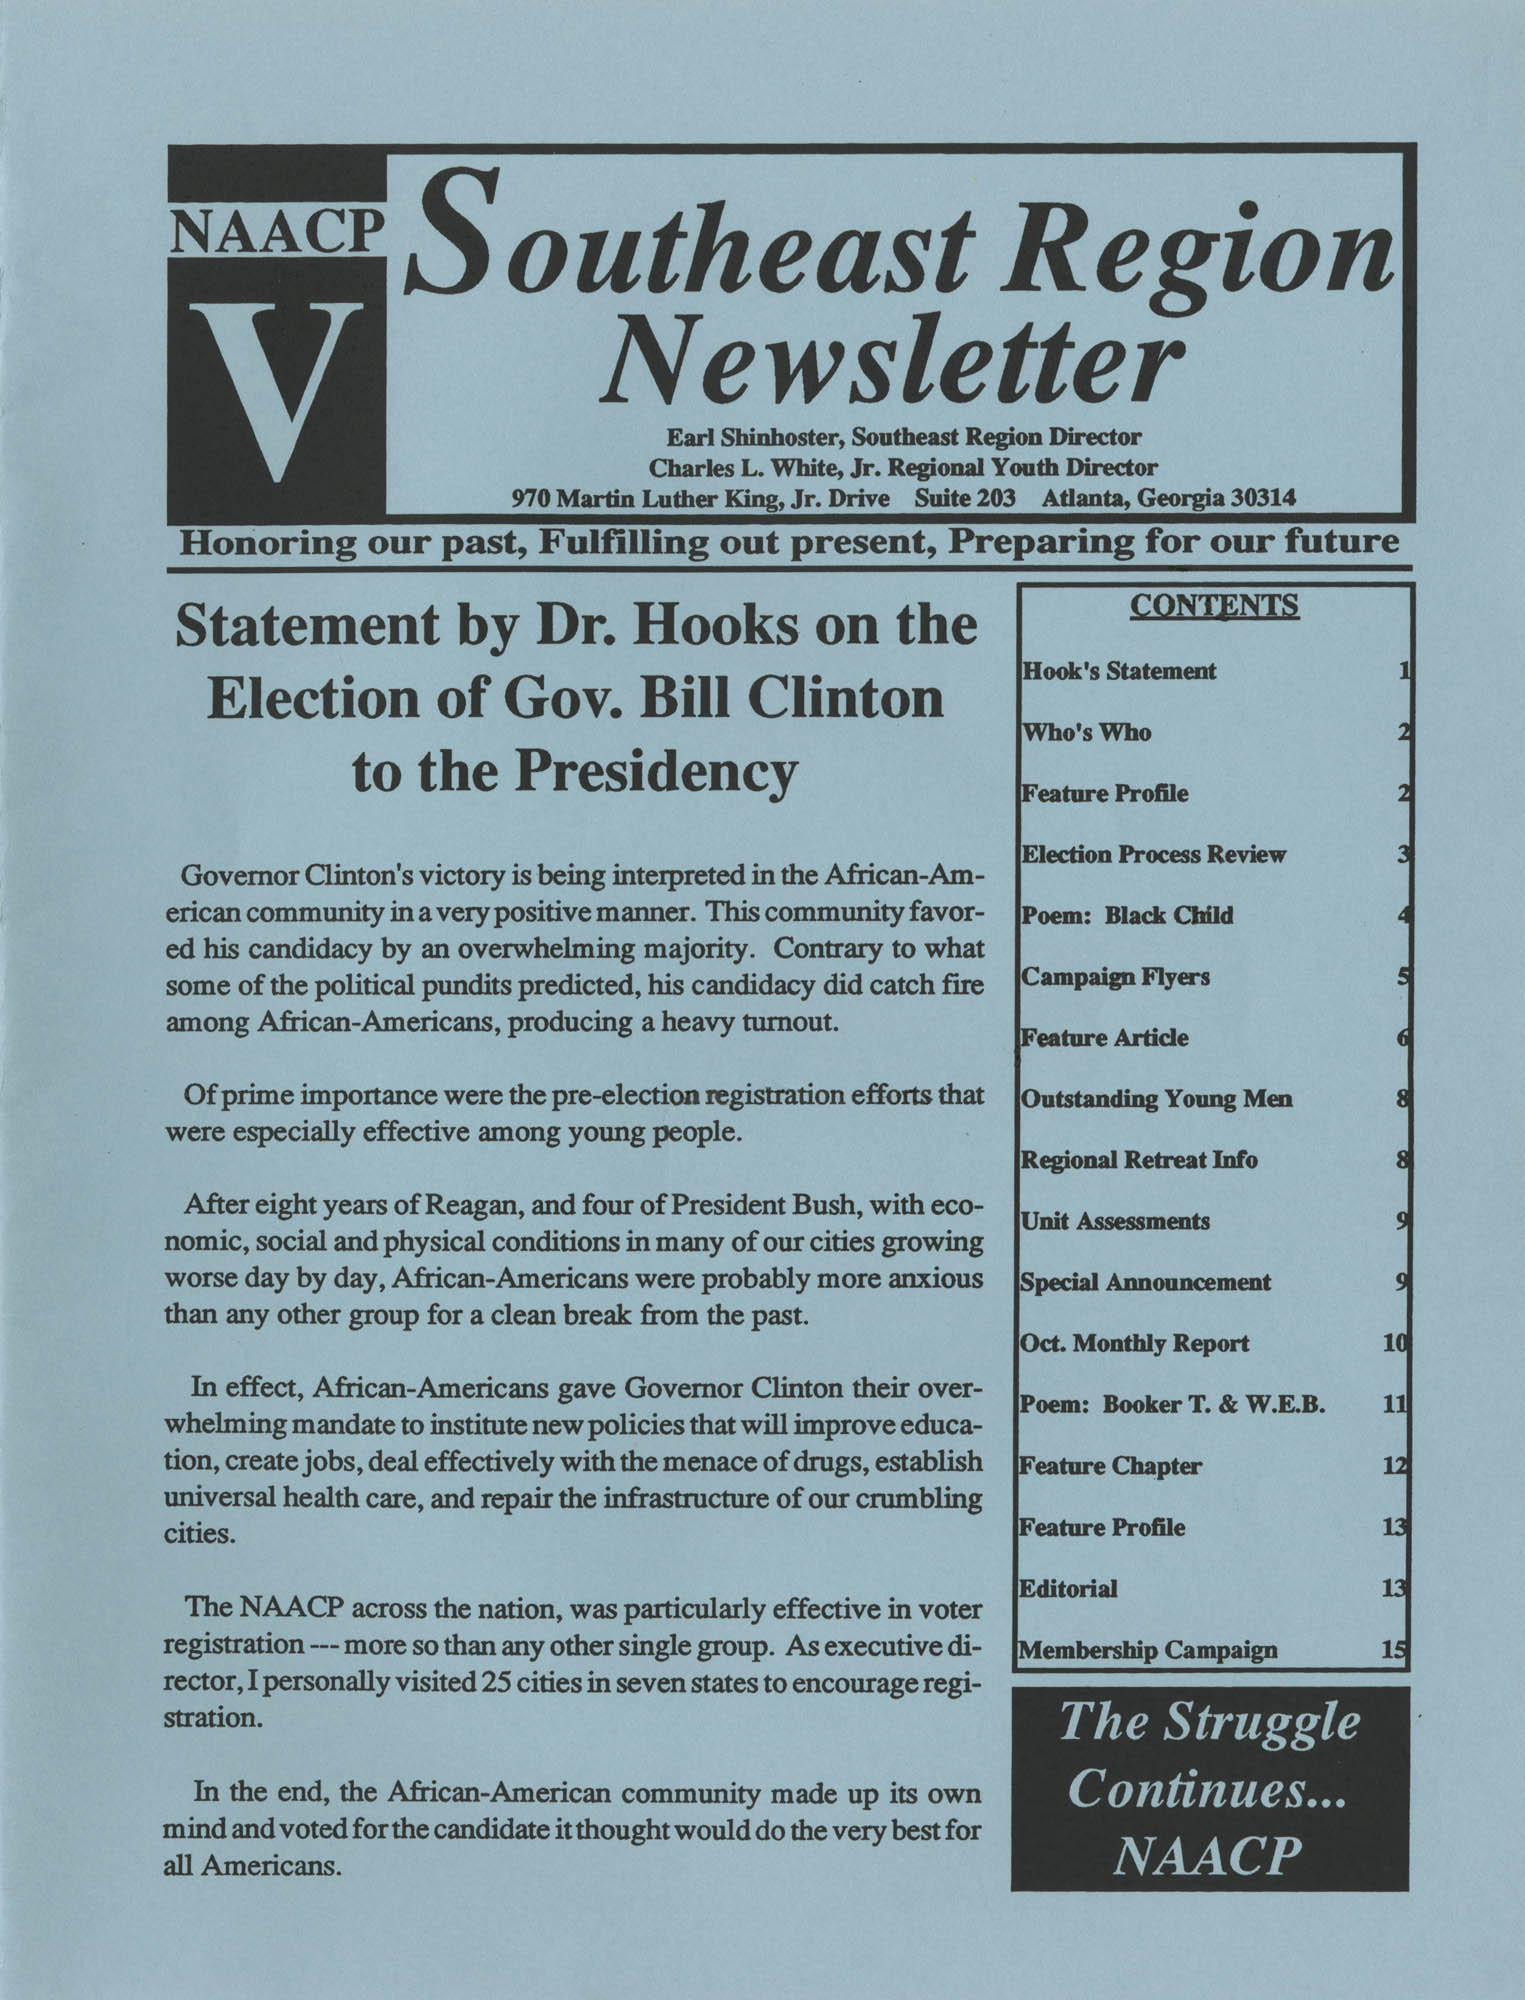 NAACP V, Southeast Region Newsletter